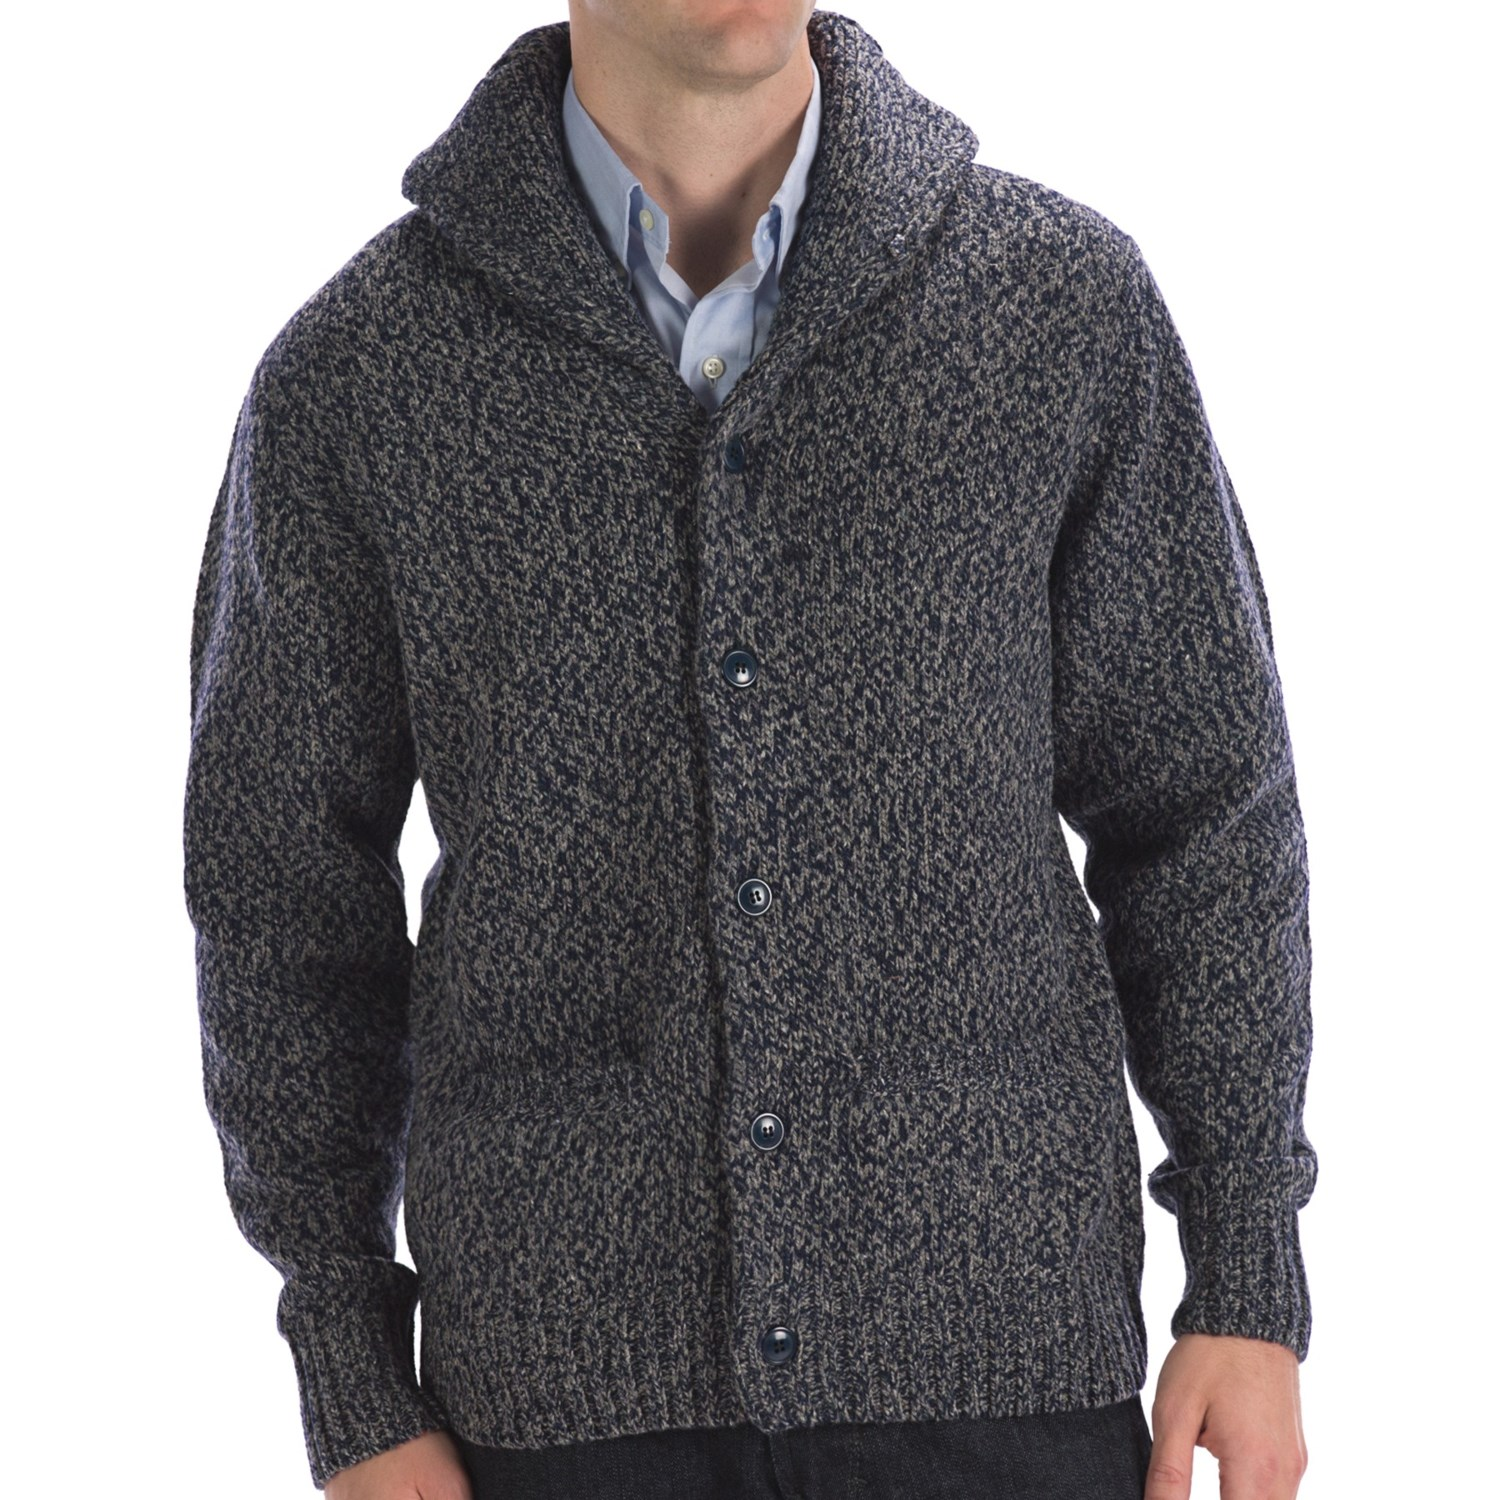 Wool Shawl Collar Mens Sweater 12